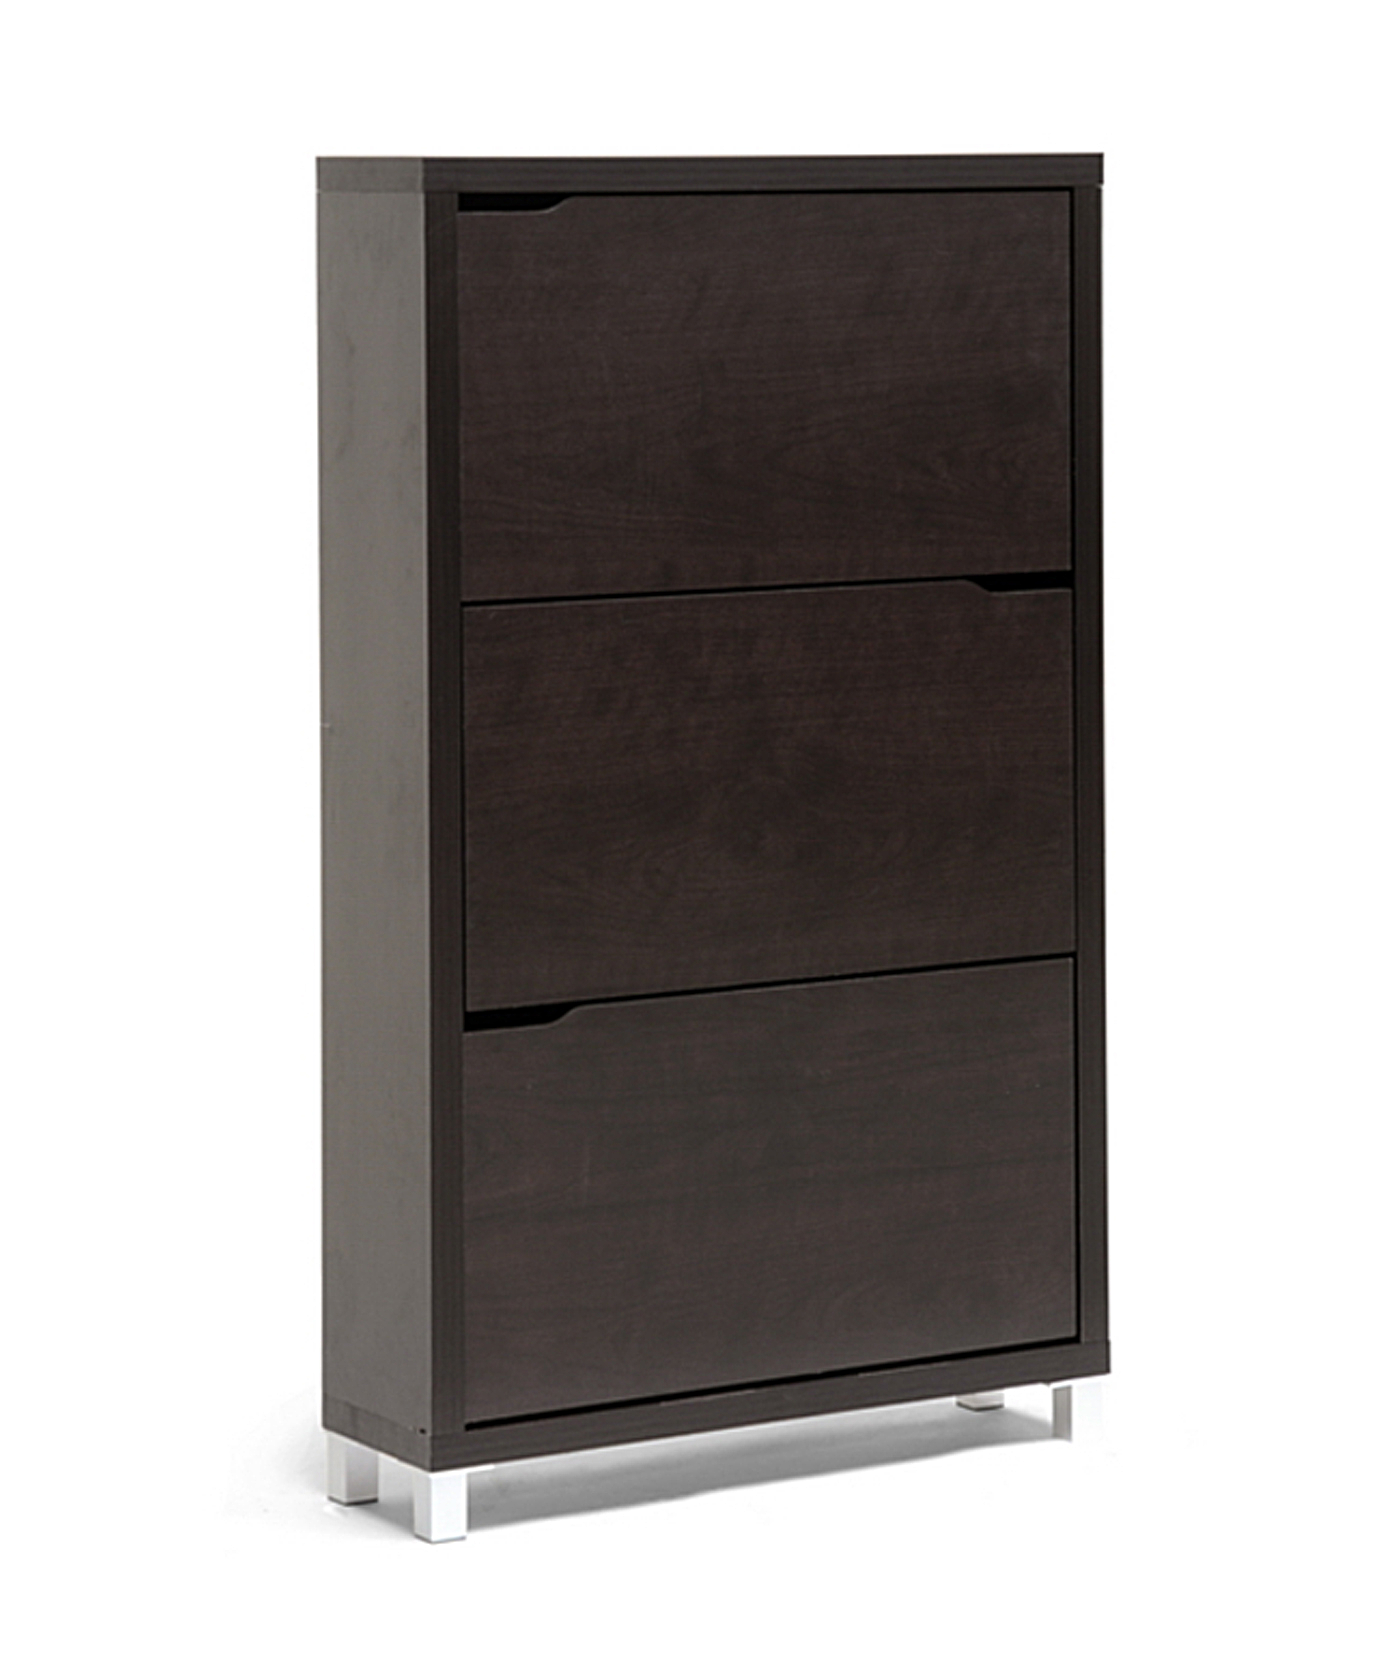 Baxton Studio Simms Shoe Cabinet - Dark Brown